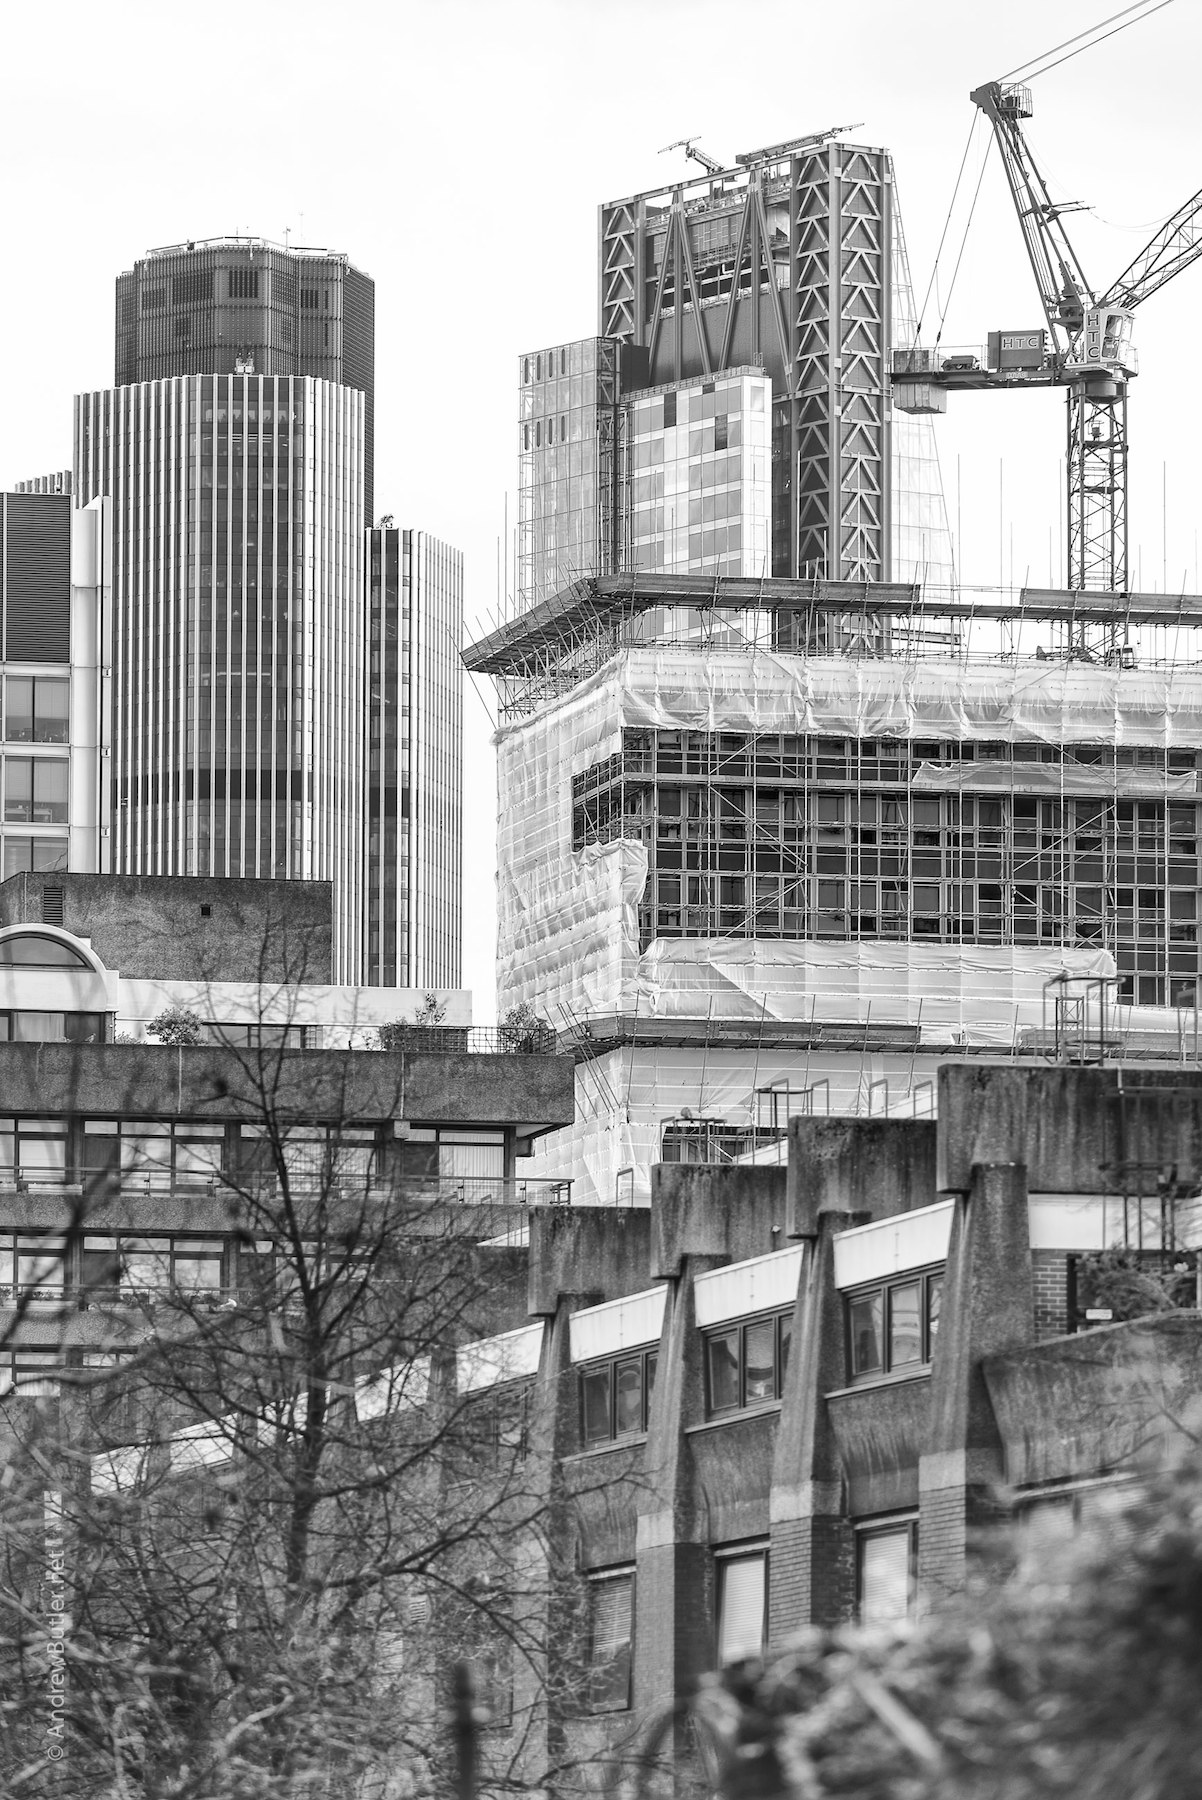 Architectural & construction Photography, London by Andrew Butler - Exeter, Devon